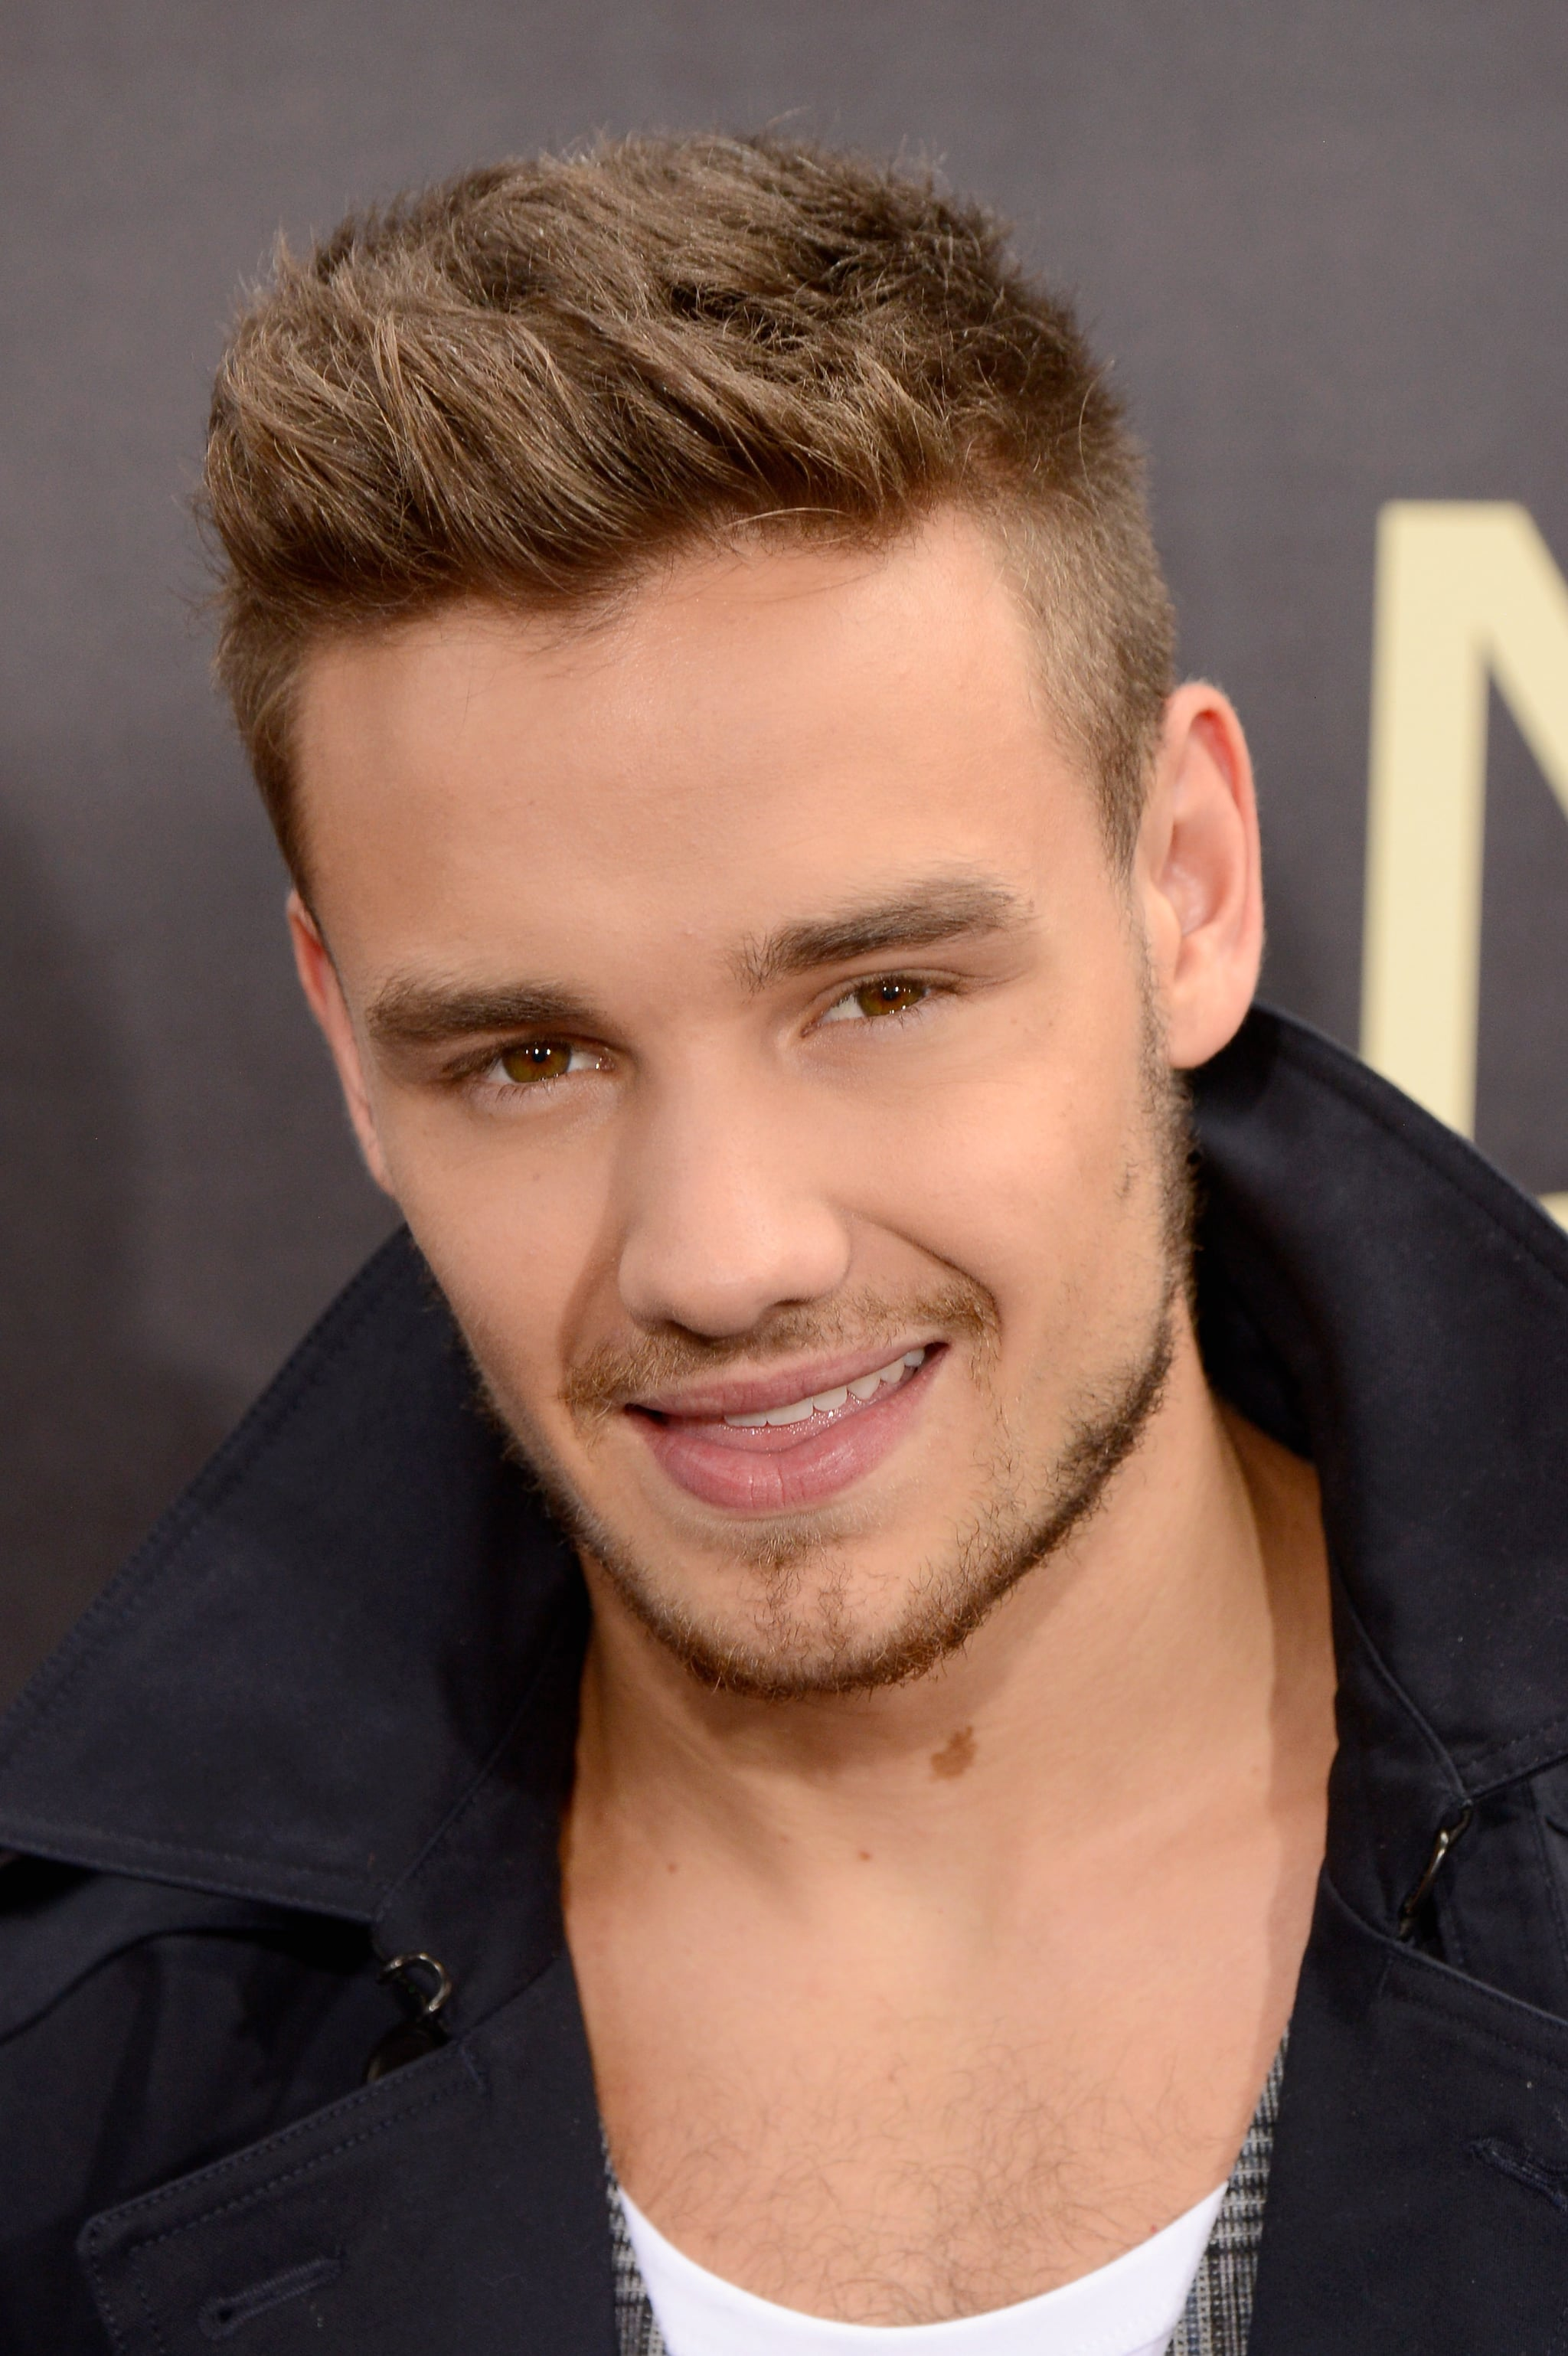 Liam Payne attended the NYC premiere of the One Direction movie.